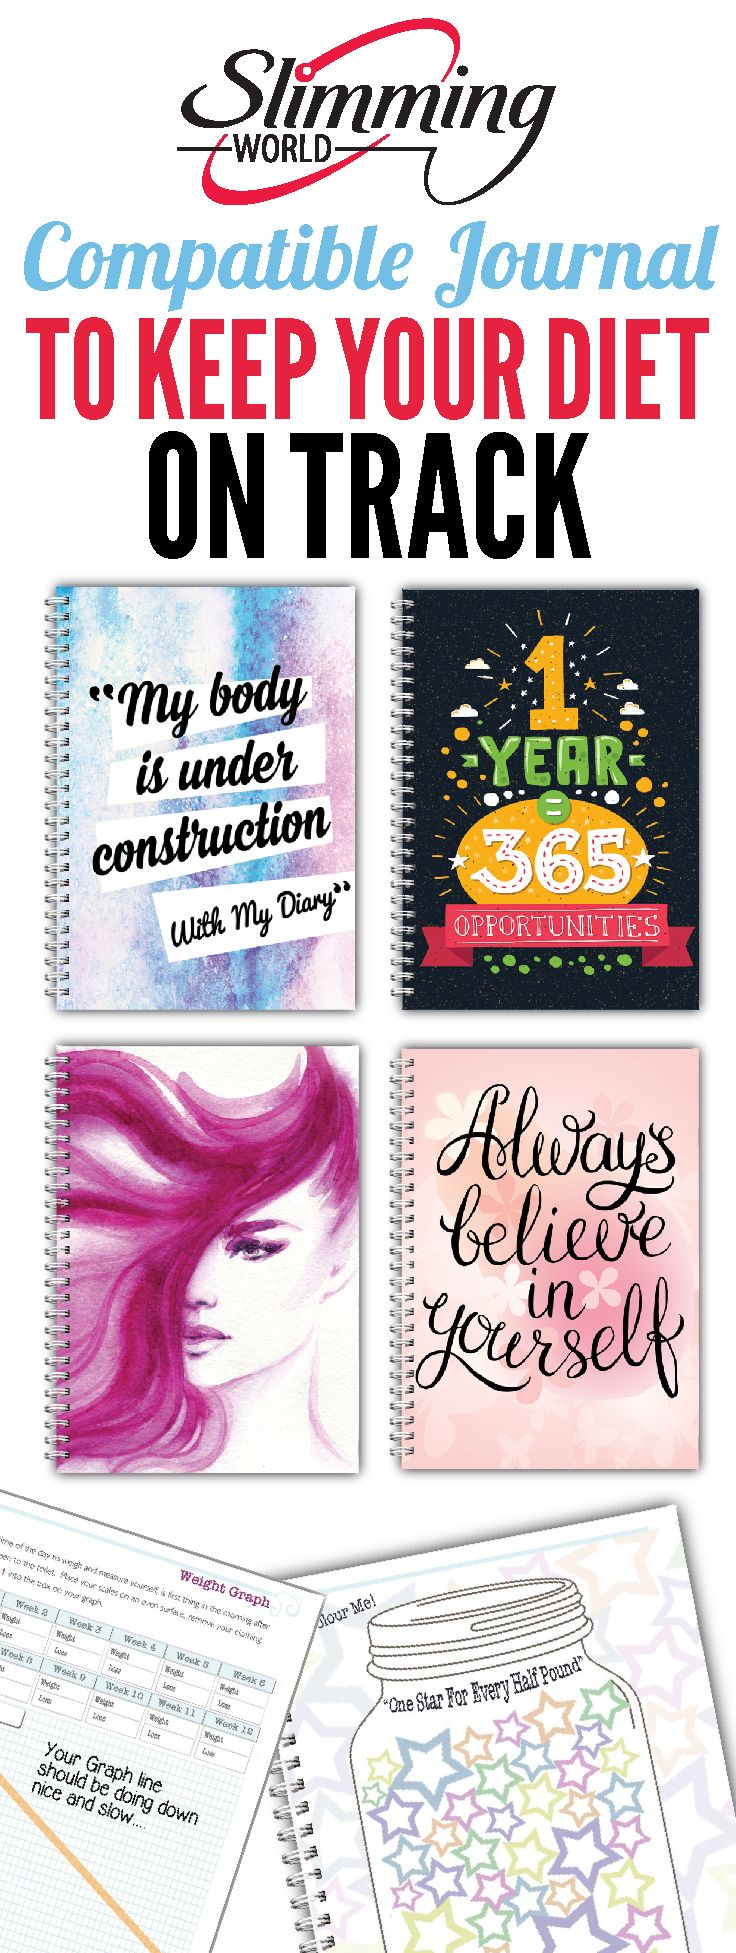 Stay focused and keep your Slimming World Diet with this special Journal.